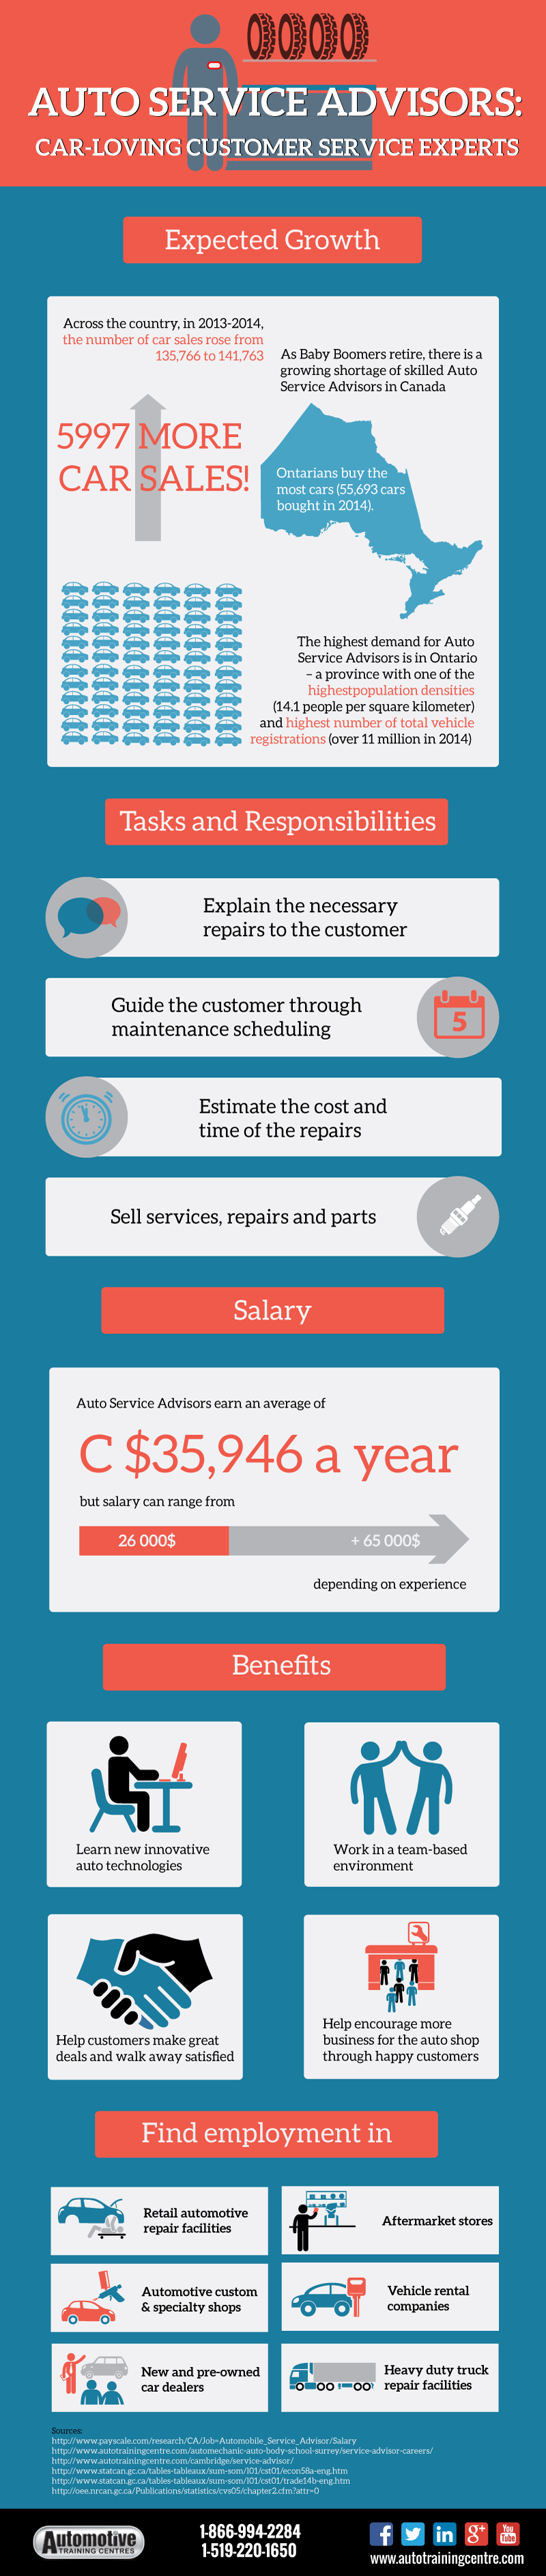 Infographic:  Auto Service Advisors: Car-Loving Customer Service Experts